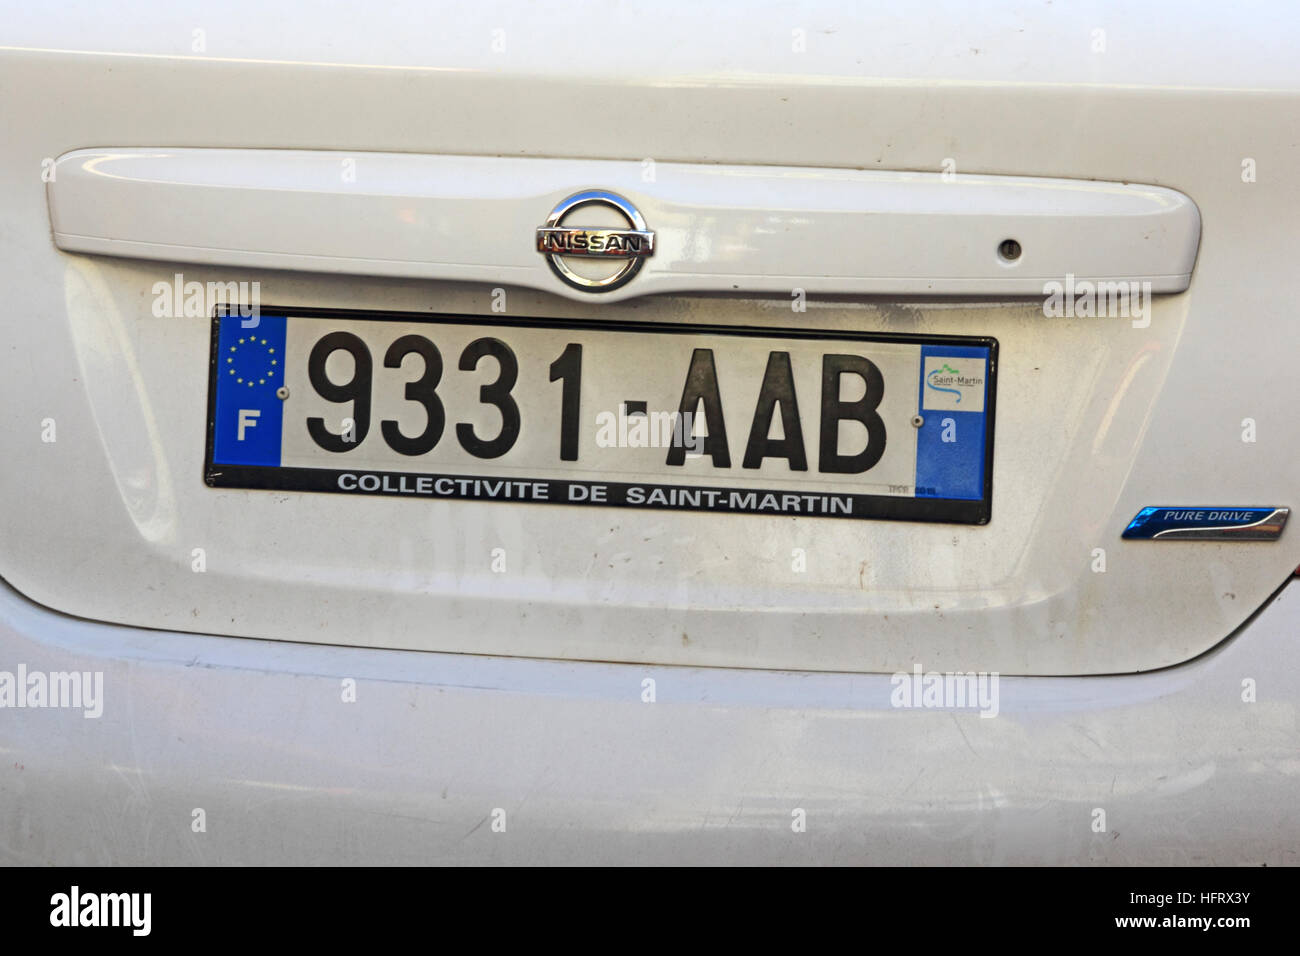 Car registration plate, Saint Martin (French sector) - Stock Image